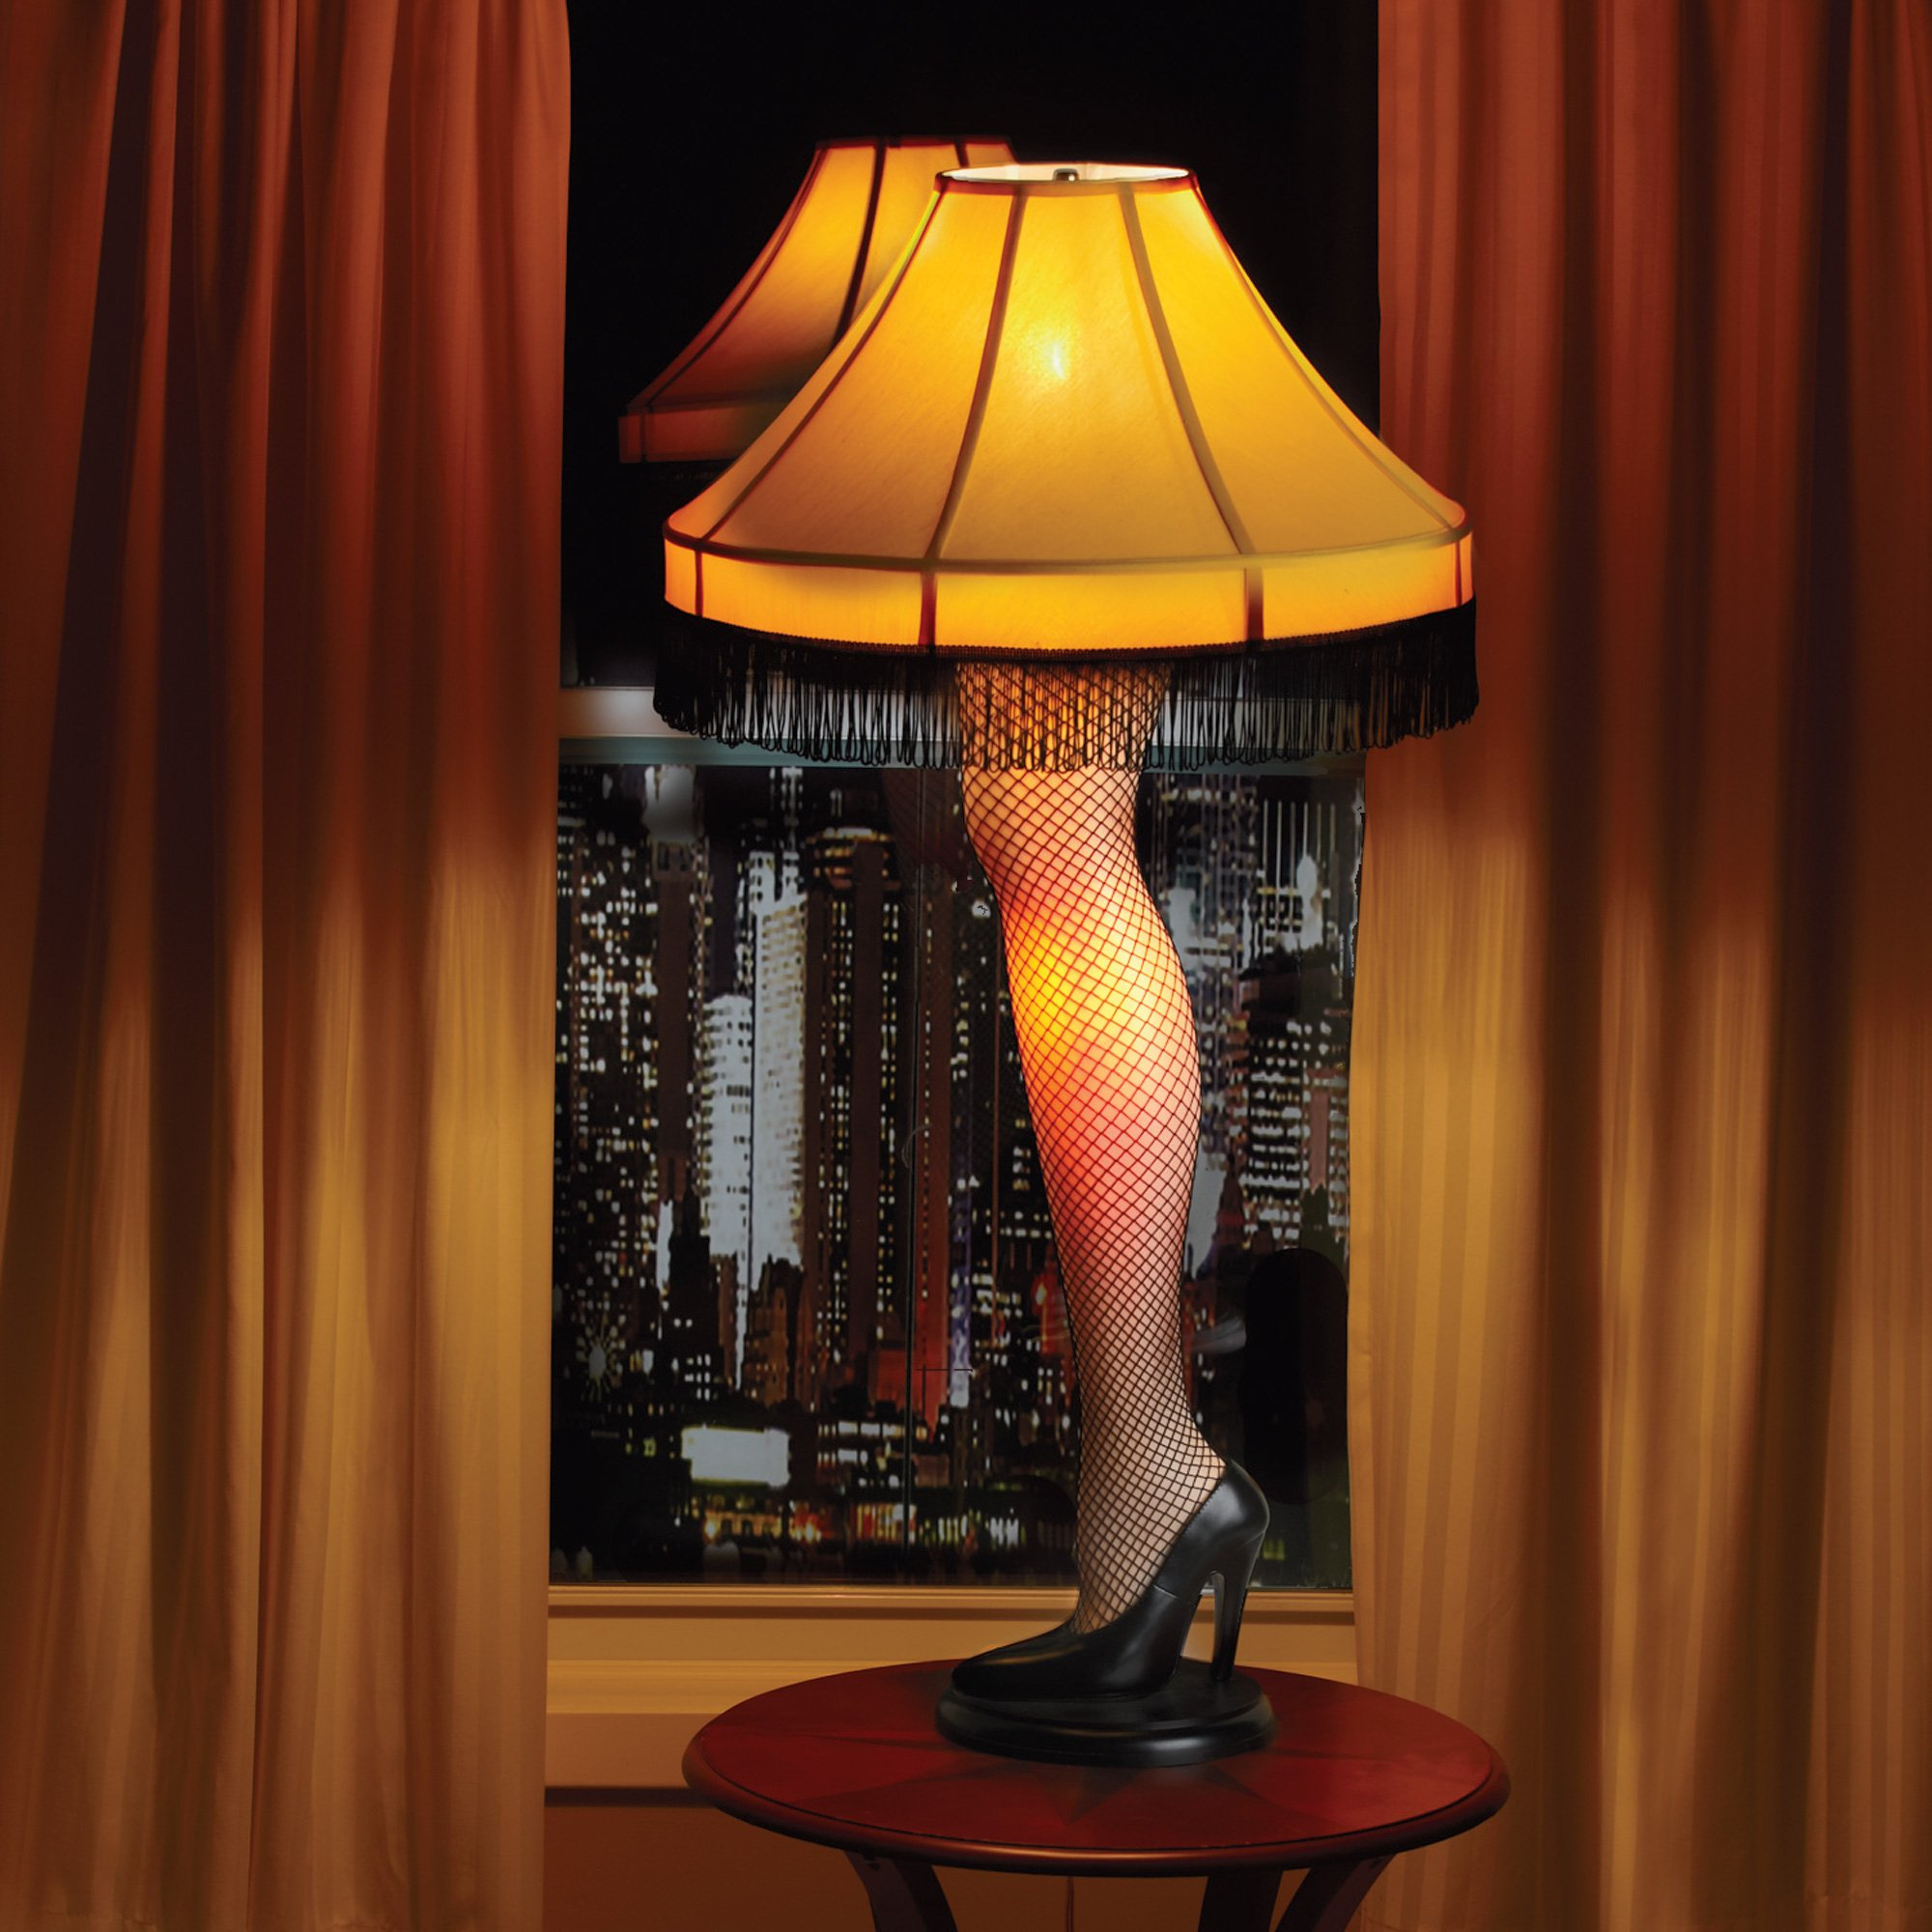 Amputated Leg Lamp WARNING Creepy Photo